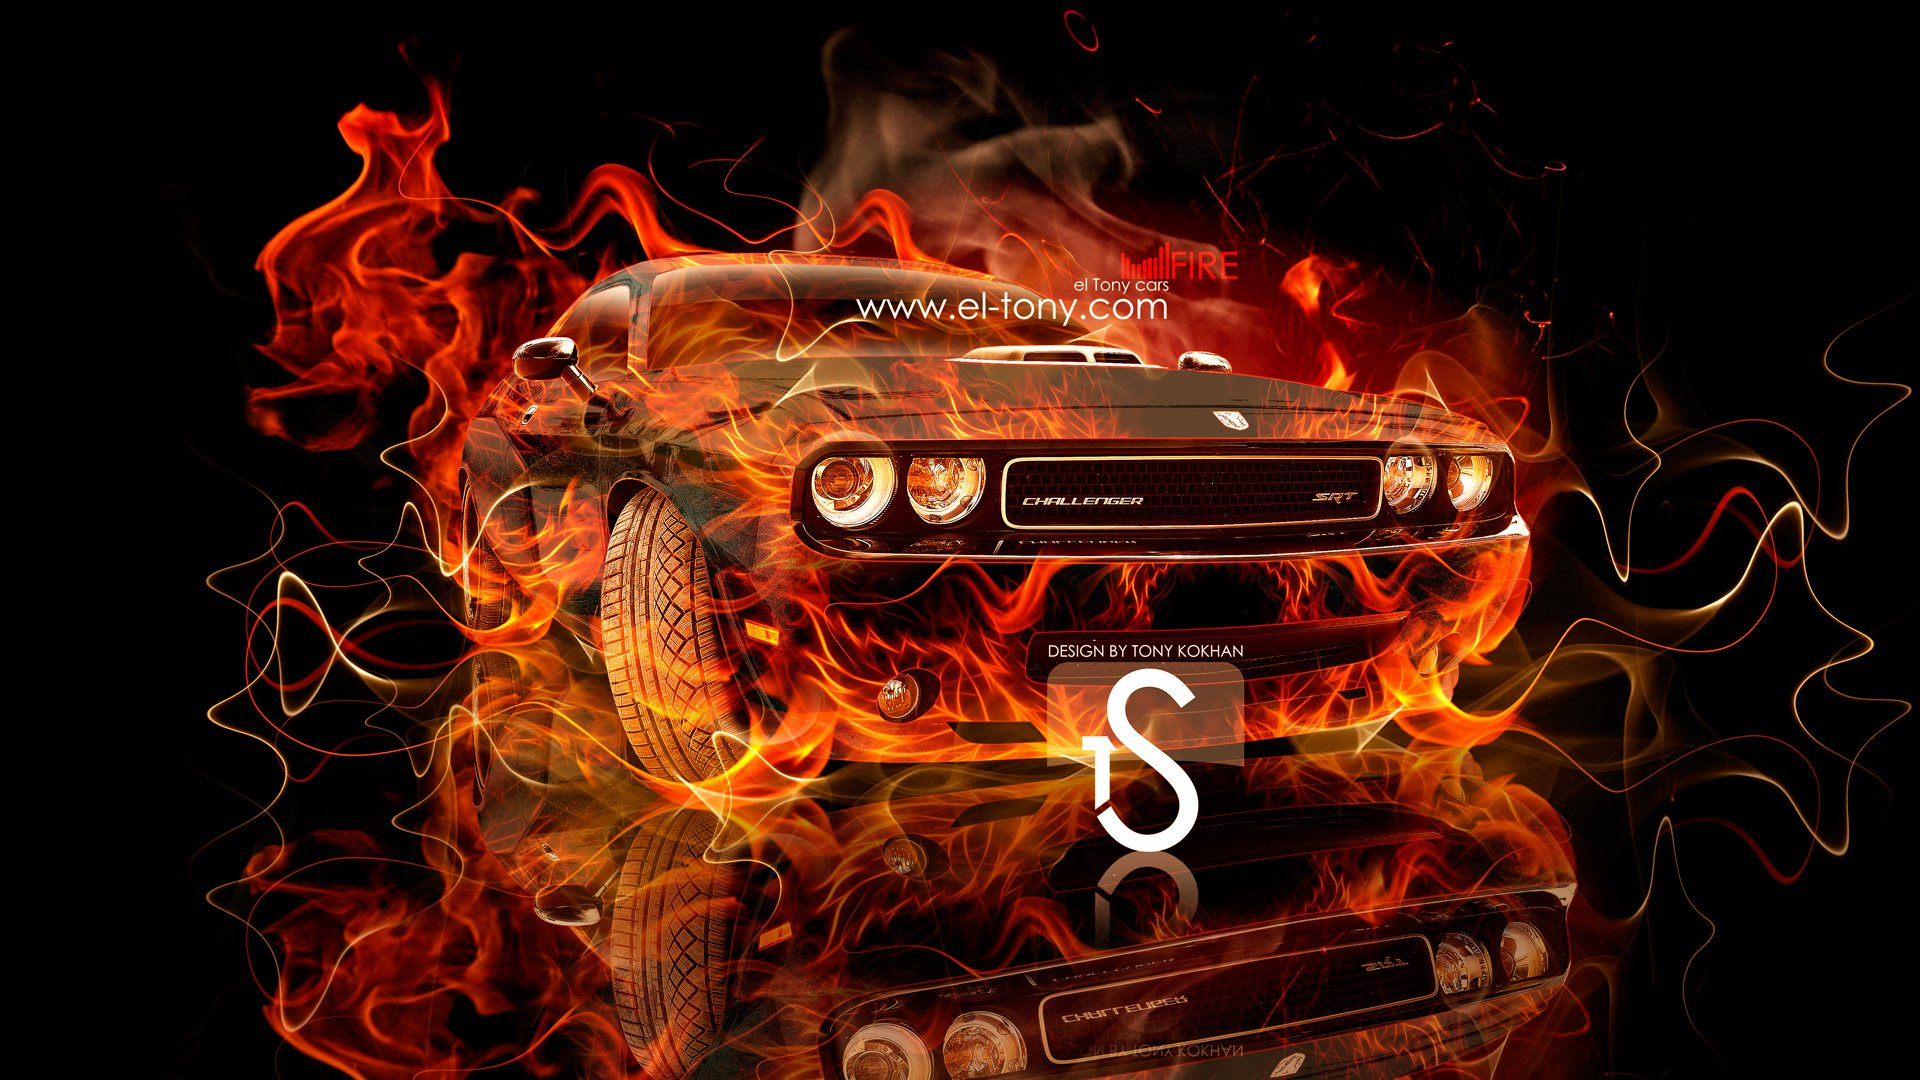 Lamborghini aventador side fire abstract car 2014 hd wallpapers design - Fire Muscle Car 2013 City Hd Wallpapers Design By Tony Car Pictures